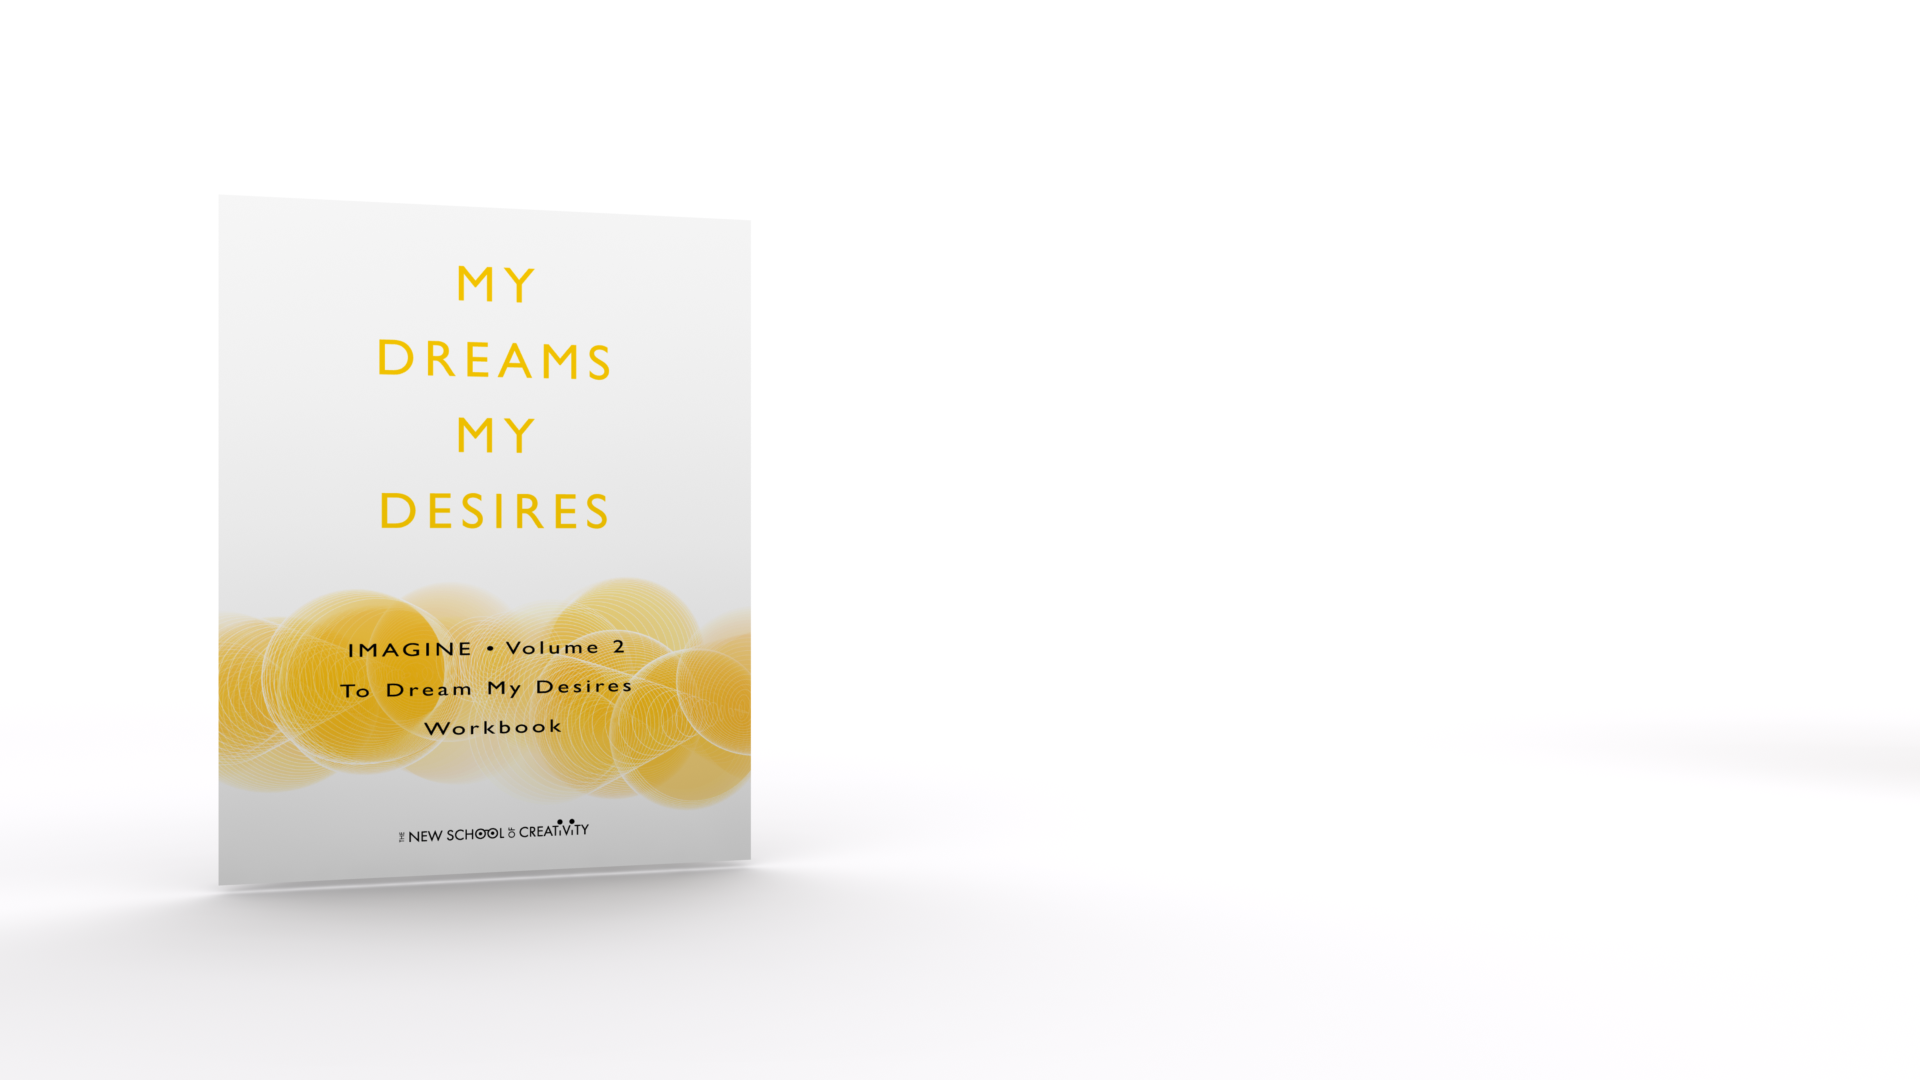 THE WORKBOOK,  MY DREAM, MY DESIRES  ASSOCIATED TO DREAM YOUR DESIRES, BY SYLVIE GENDREAU AND PIERRE GUITÉ, CO-FOUNDERS OF THE NEW SCHOOL OF CREATIVITY